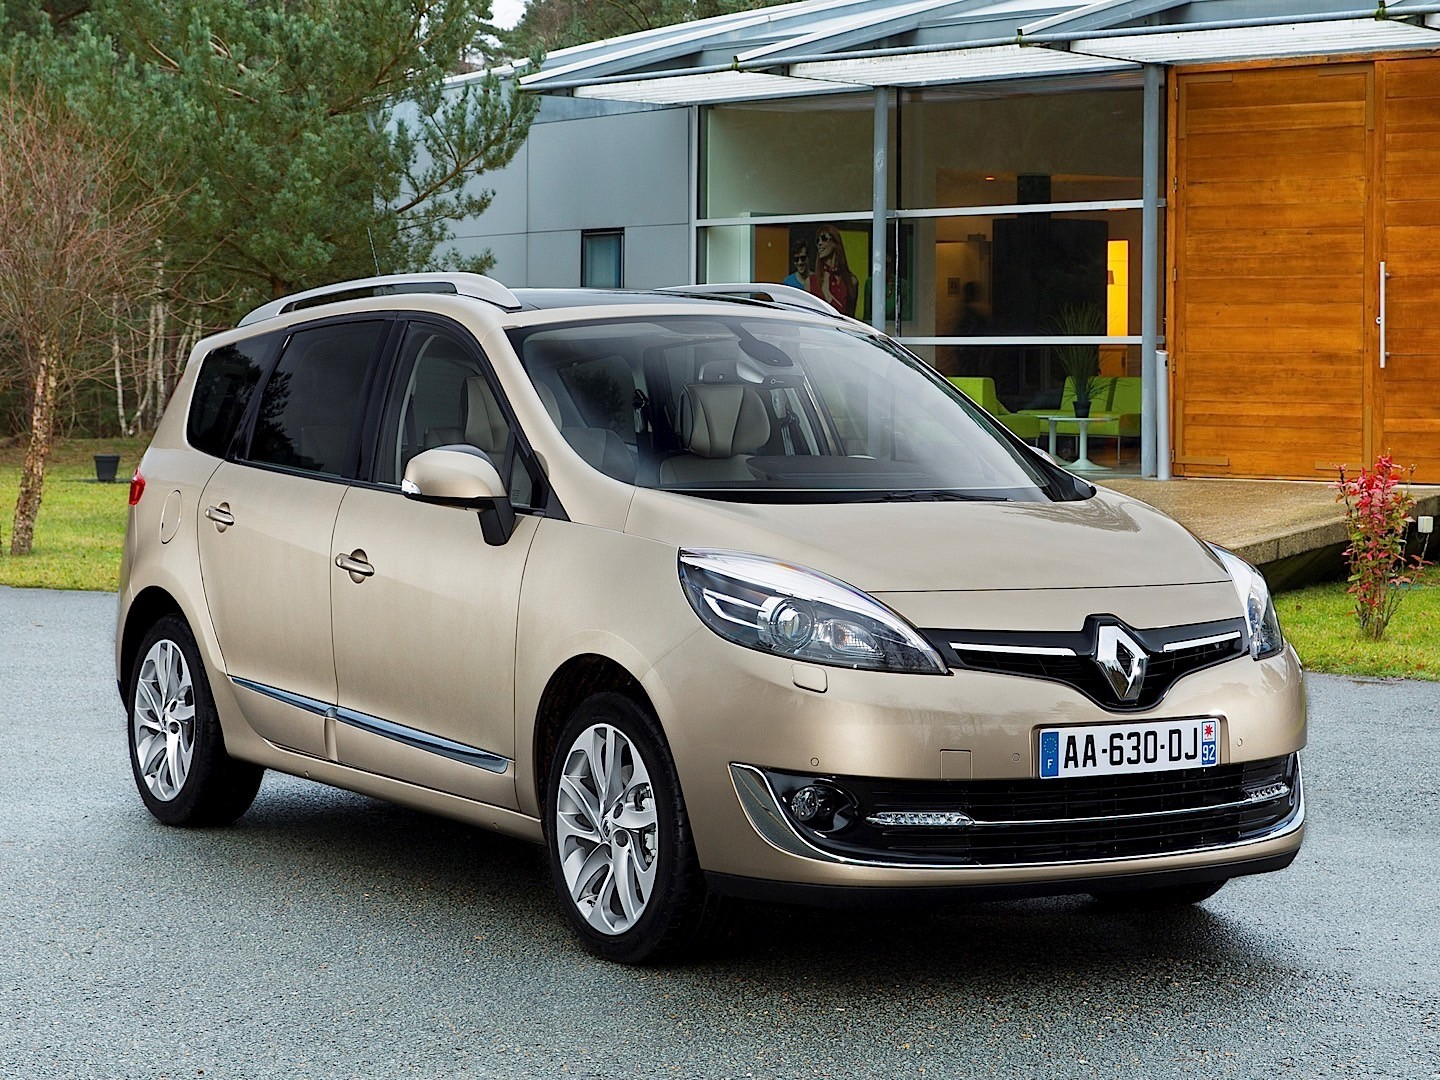 renault grand scenic specs 2013 2014 2015 2016 2017 2018 autoevolution. Black Bedroom Furniture Sets. Home Design Ideas